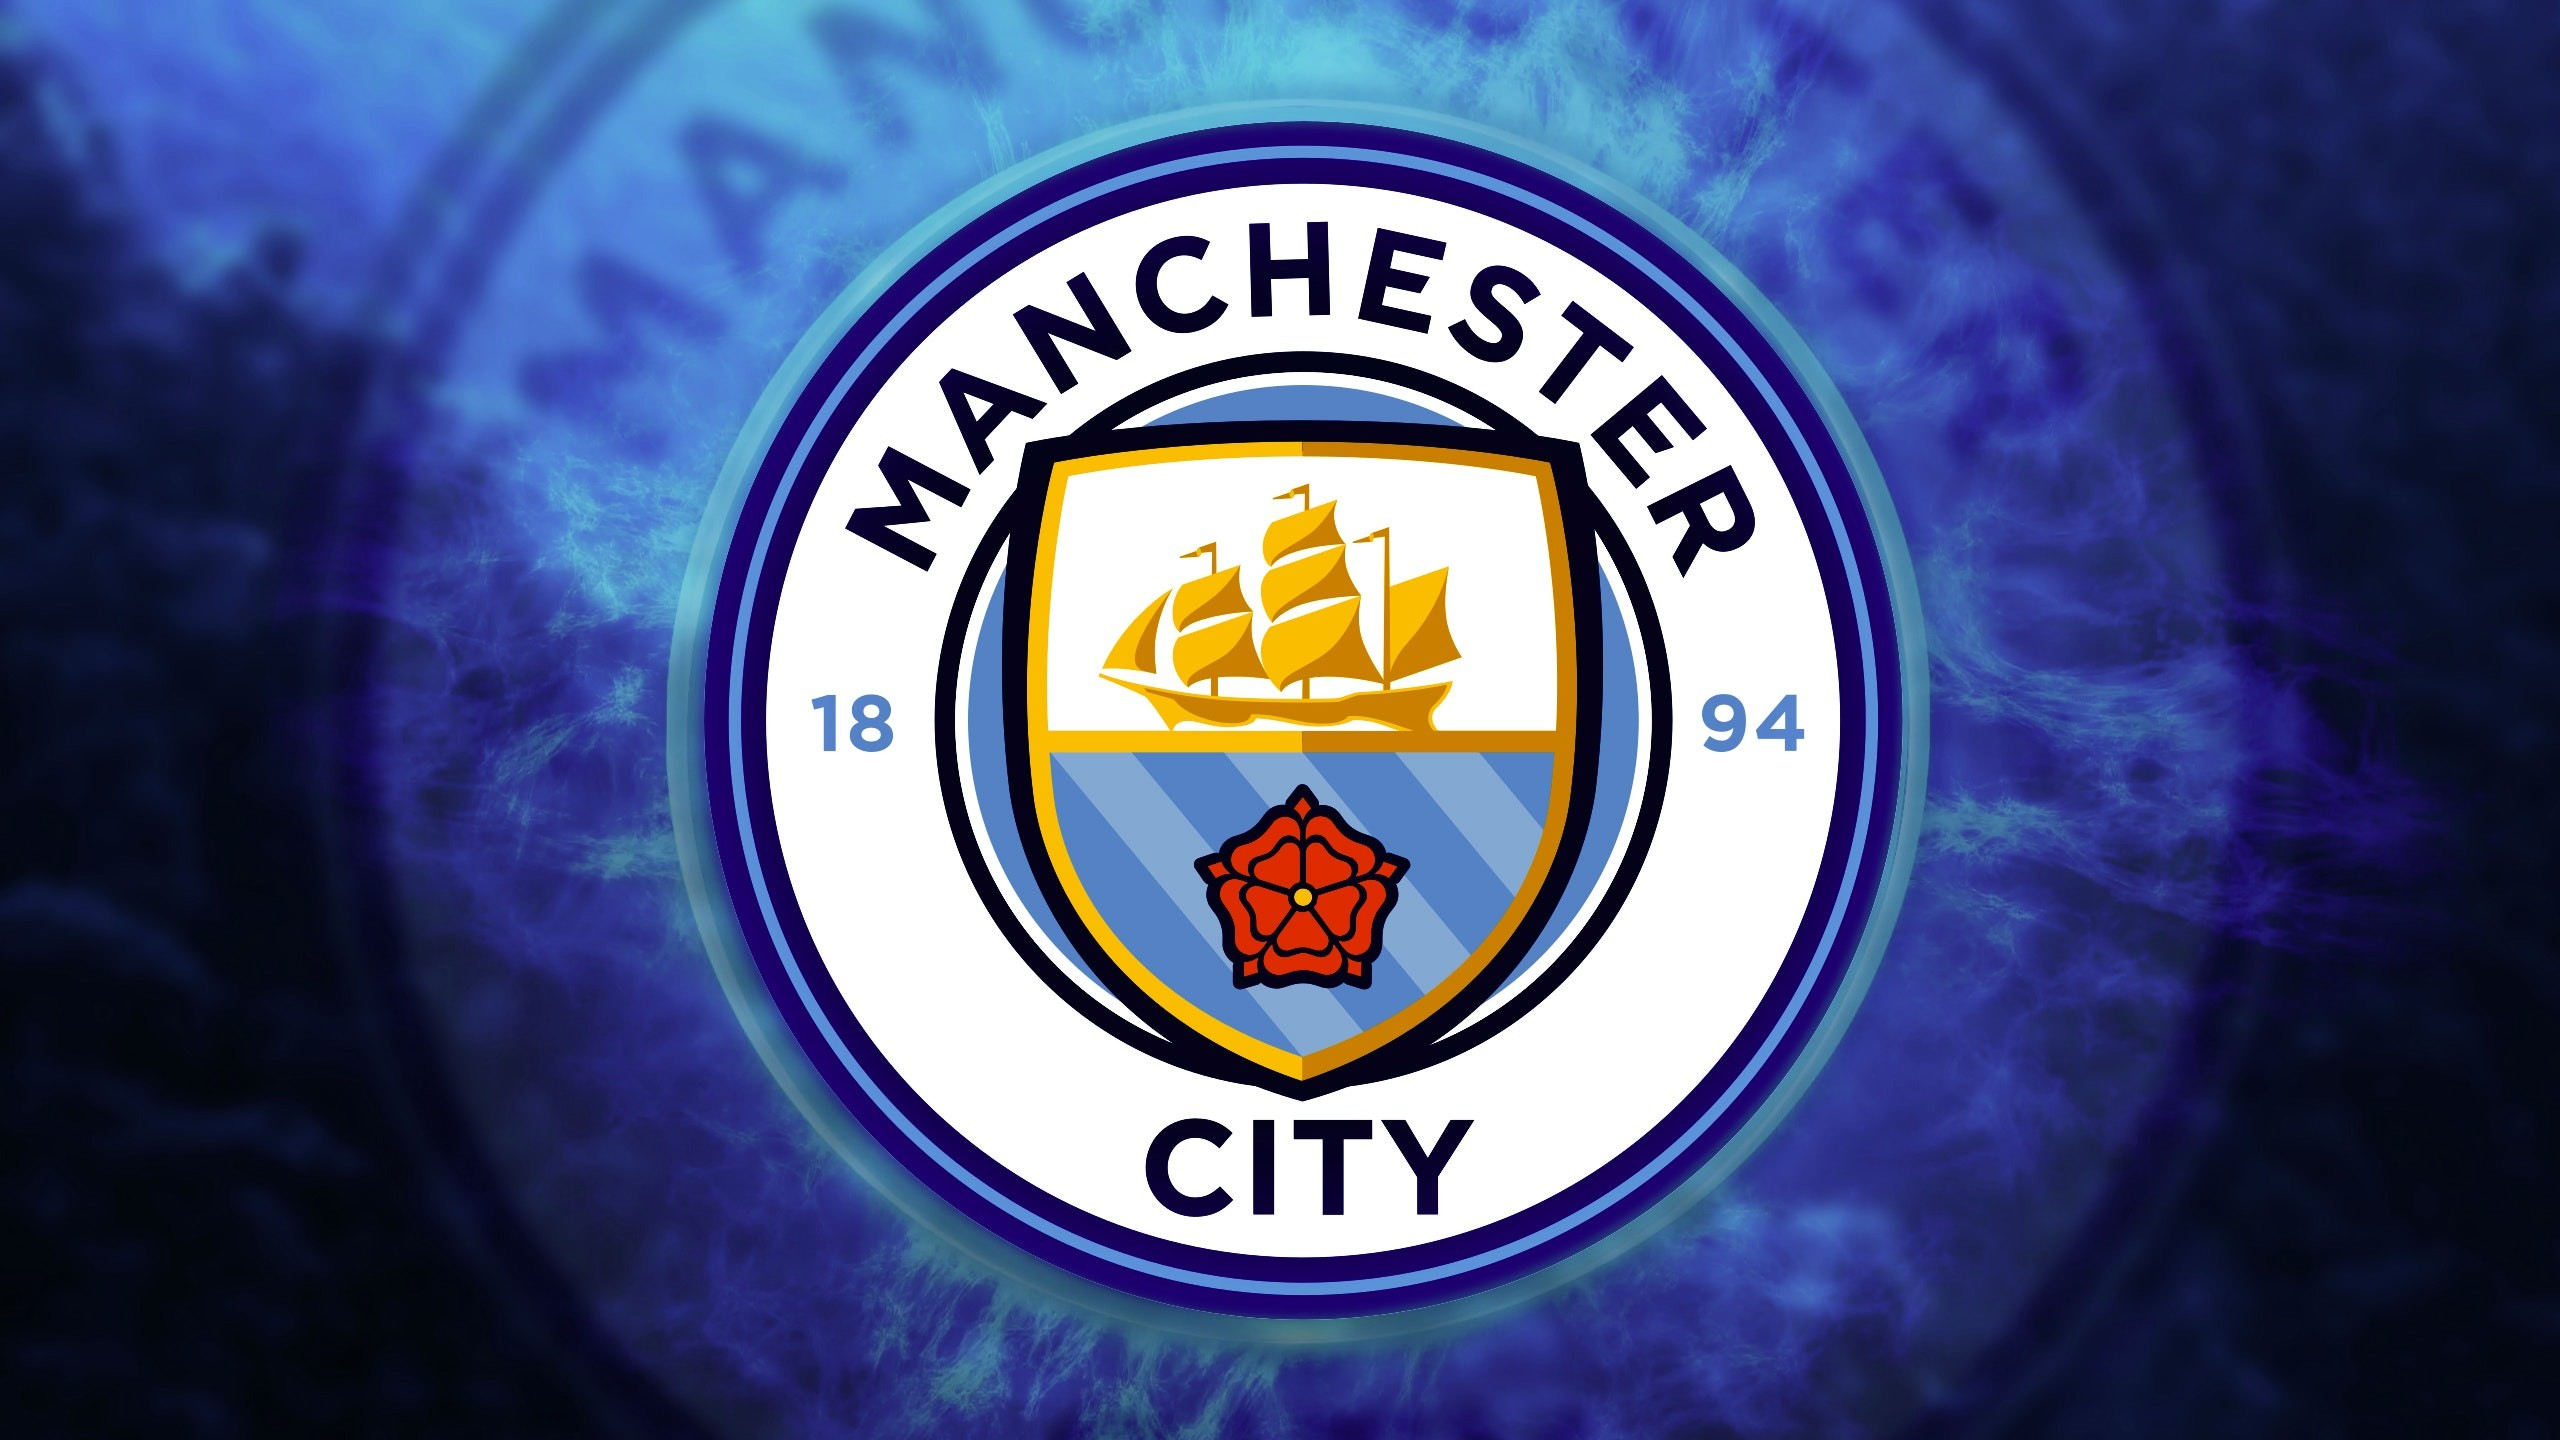 Manchester City Wallpaper 2018 (85+ Images